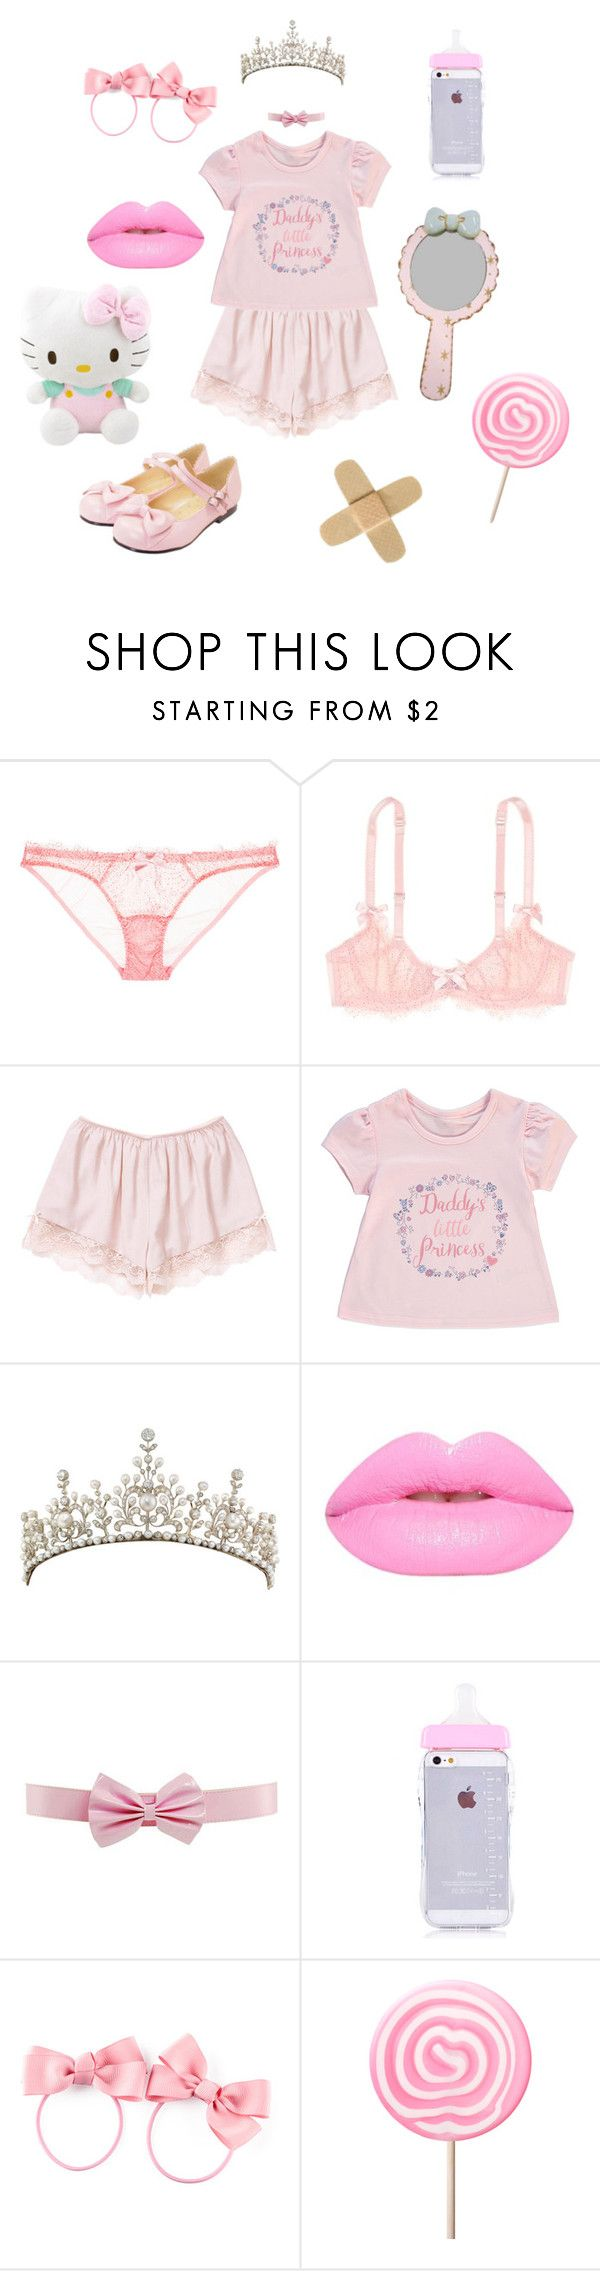 """Lilli's OOTD 3"" by cosmic-sky ❤ liked on Polyvore featuring L'Agent By Agent Provocateur, George, H&M, Hello Kitty, Pink and ddlg"